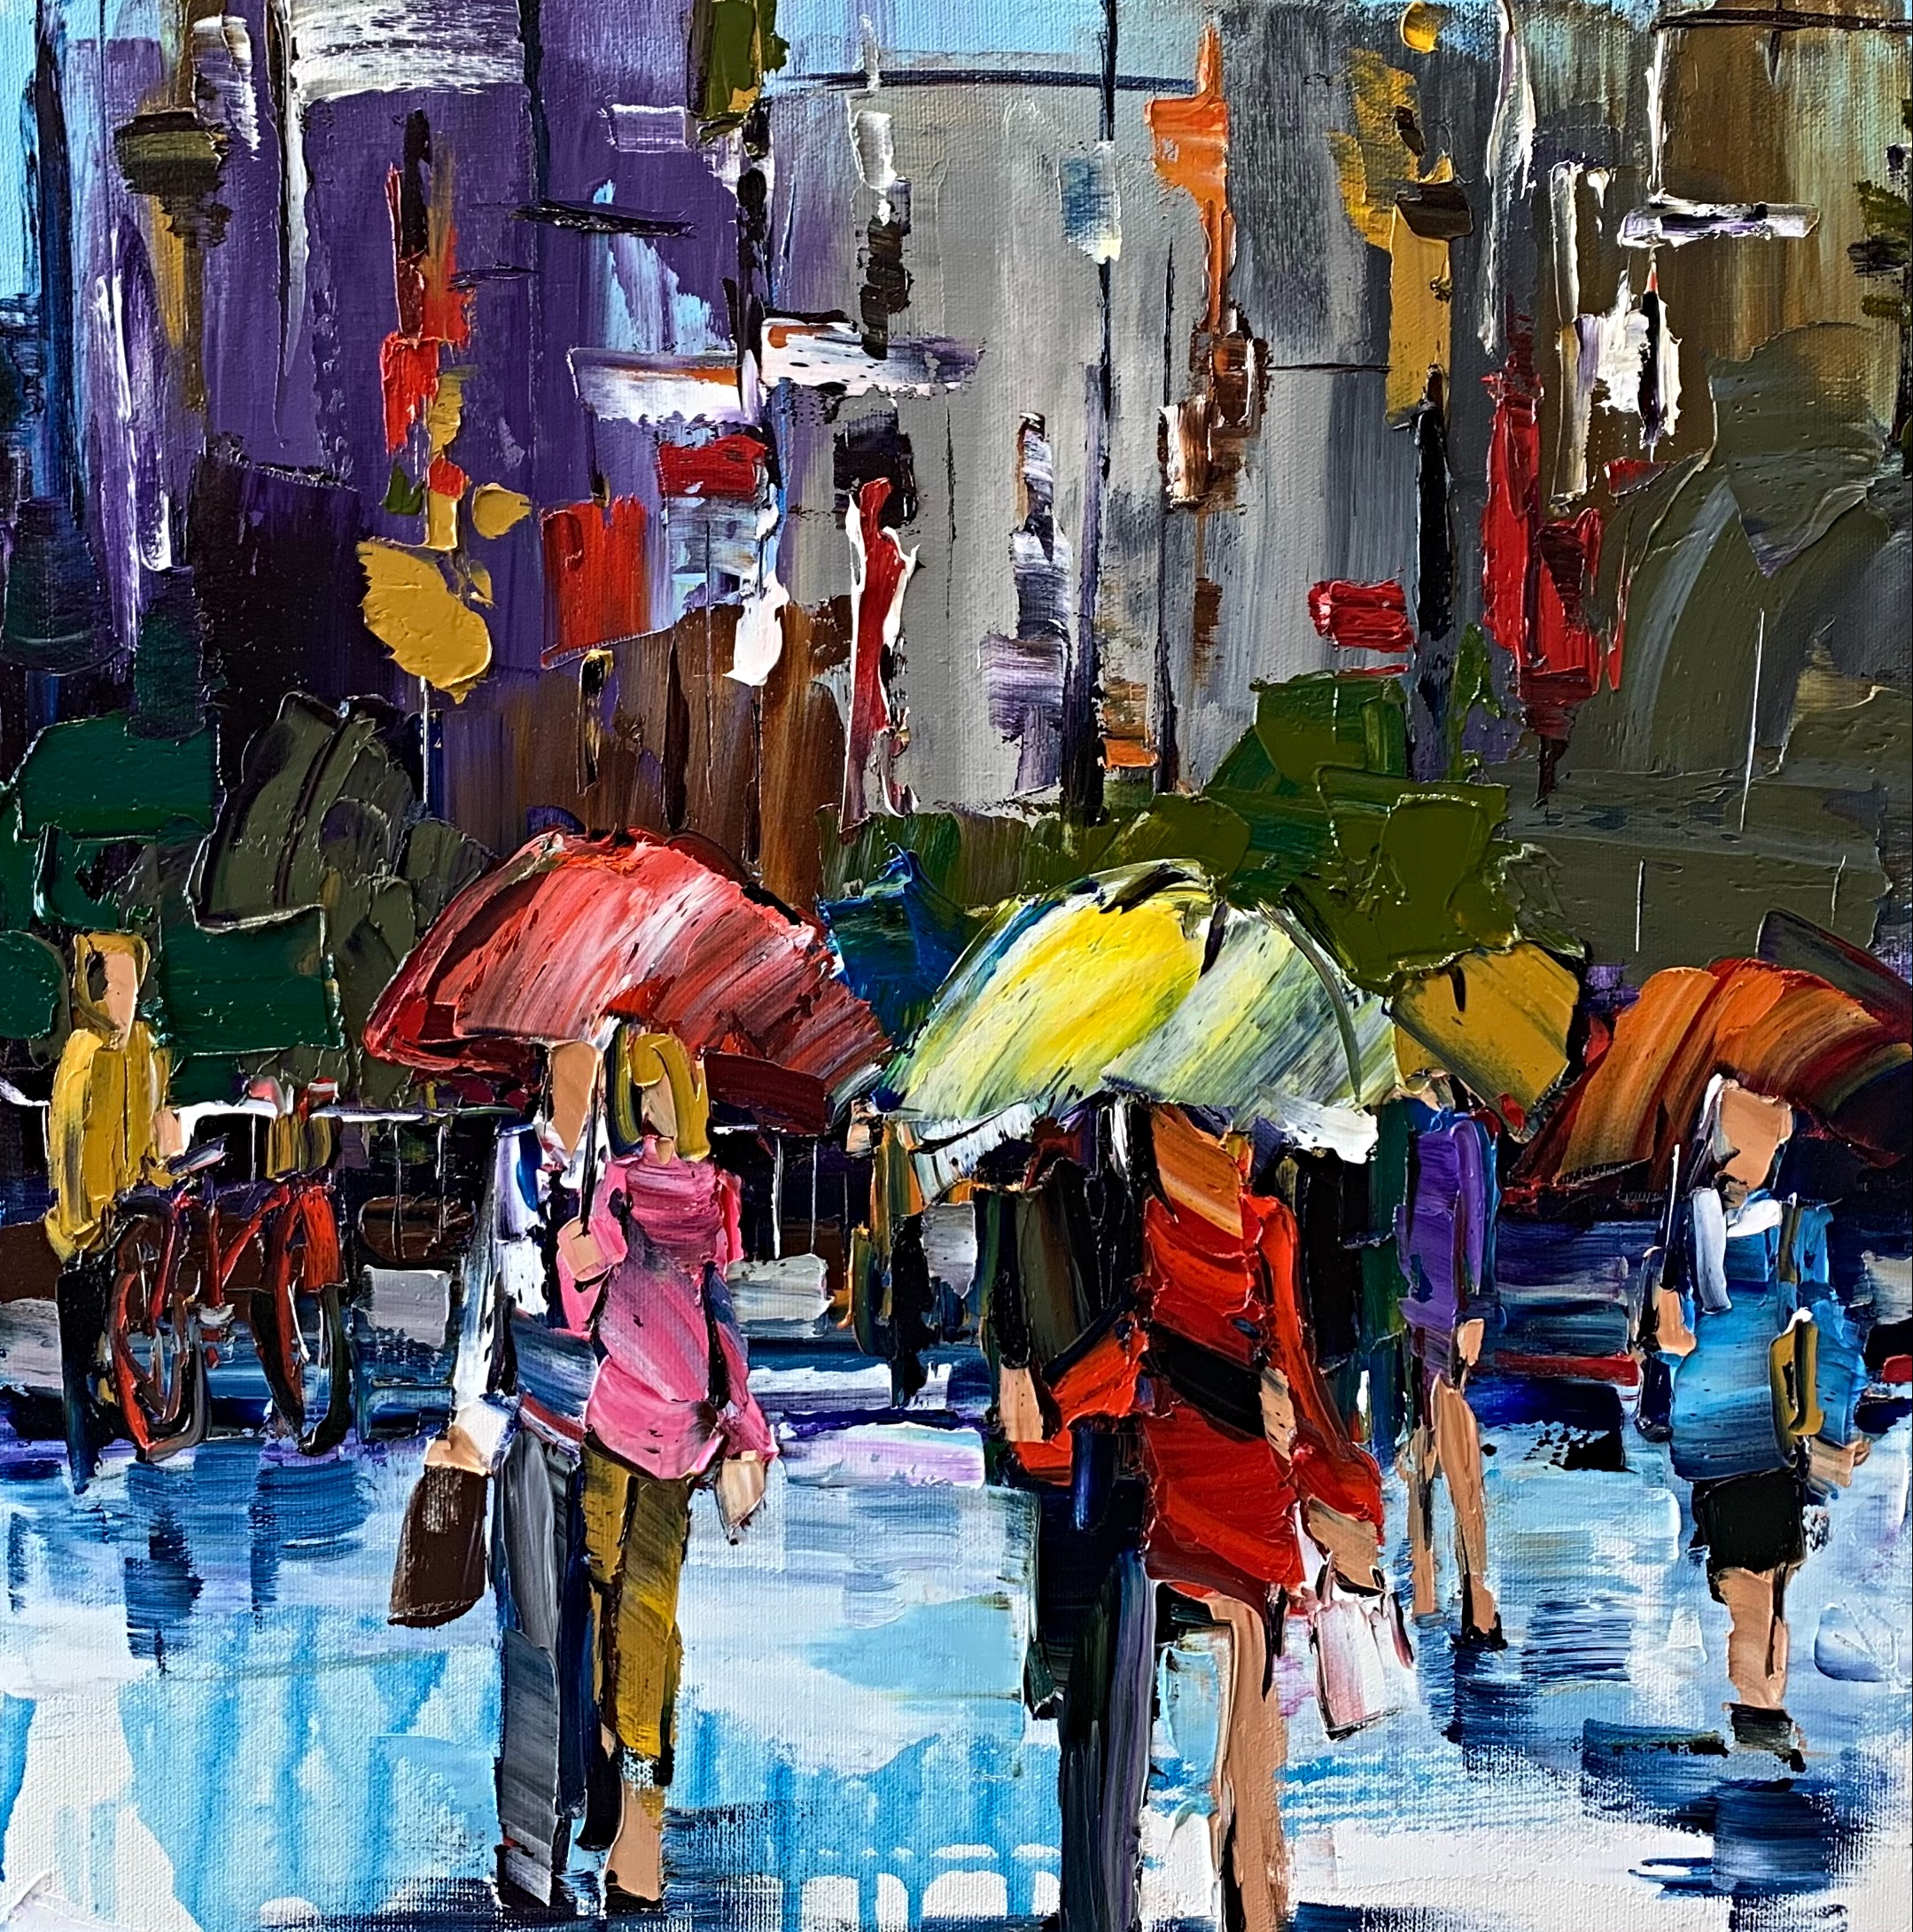 There's Just Something about an Umbrella 1, rainy cityscape painting by Kimberly Kiel | Effusion Art Gallery + Cast Glass Studio, Invermere BC